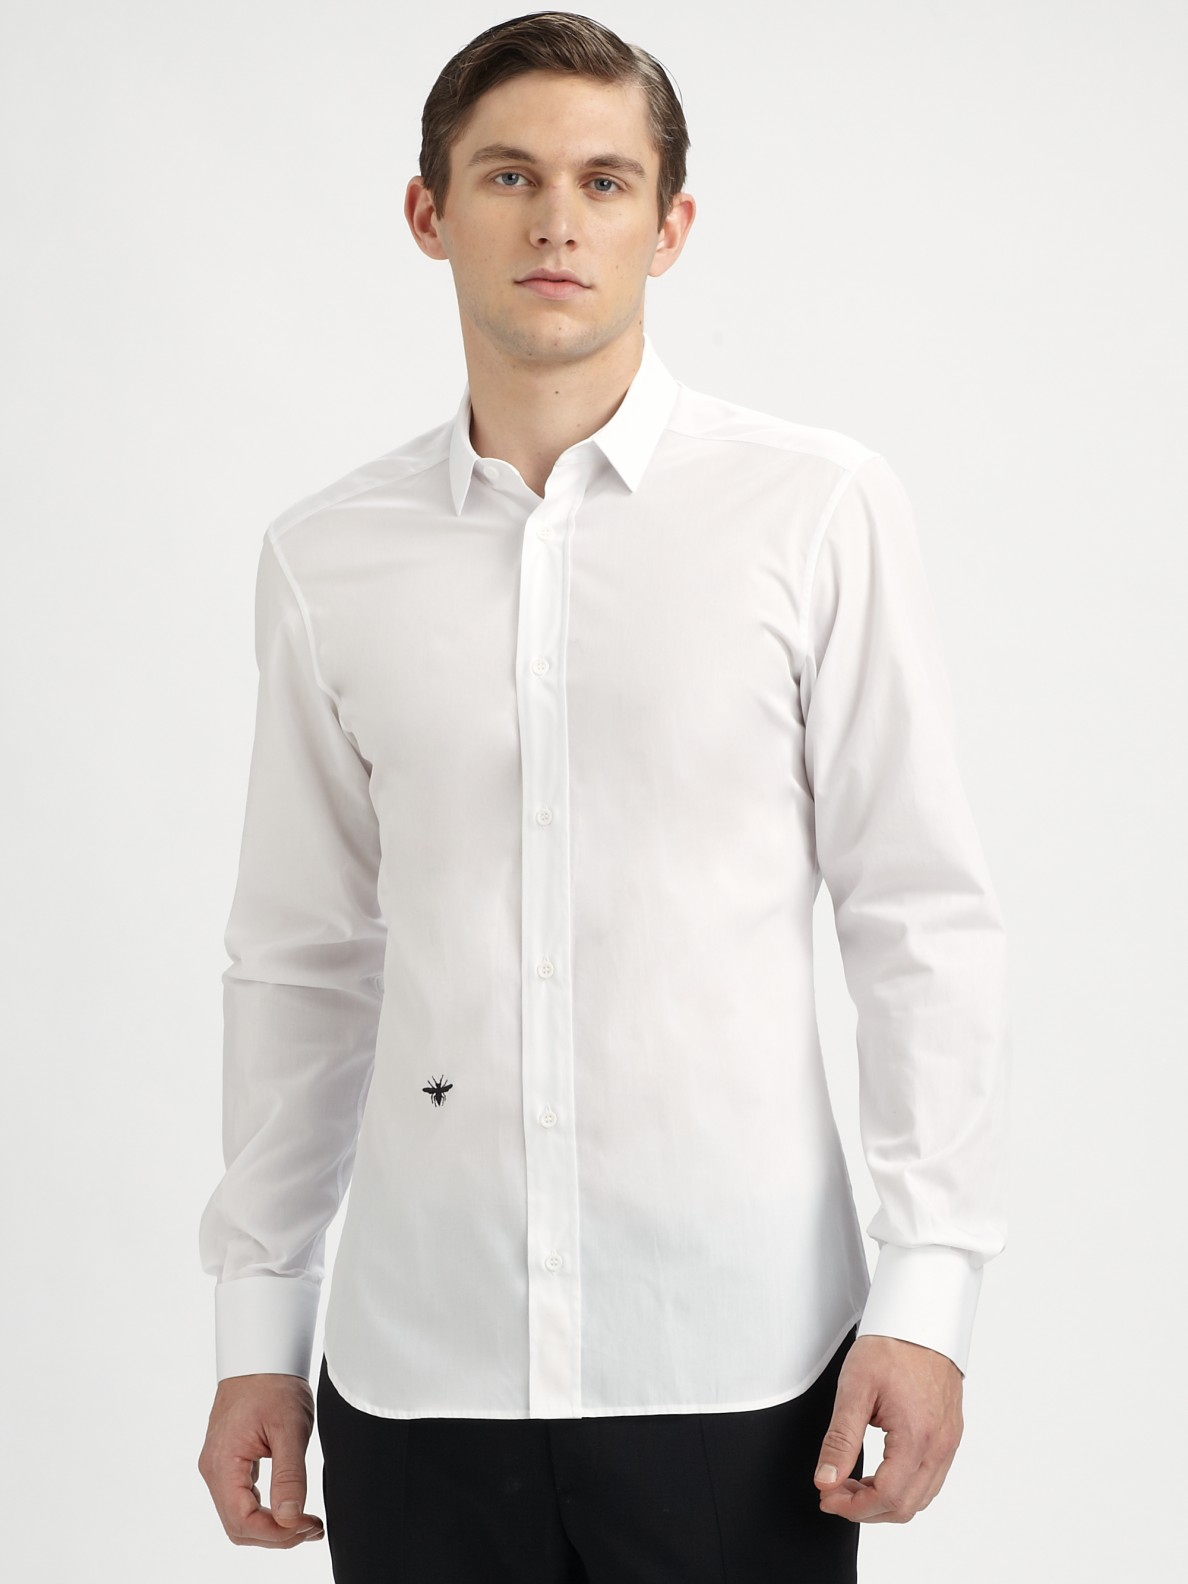 Cheap Dress Shirts Men